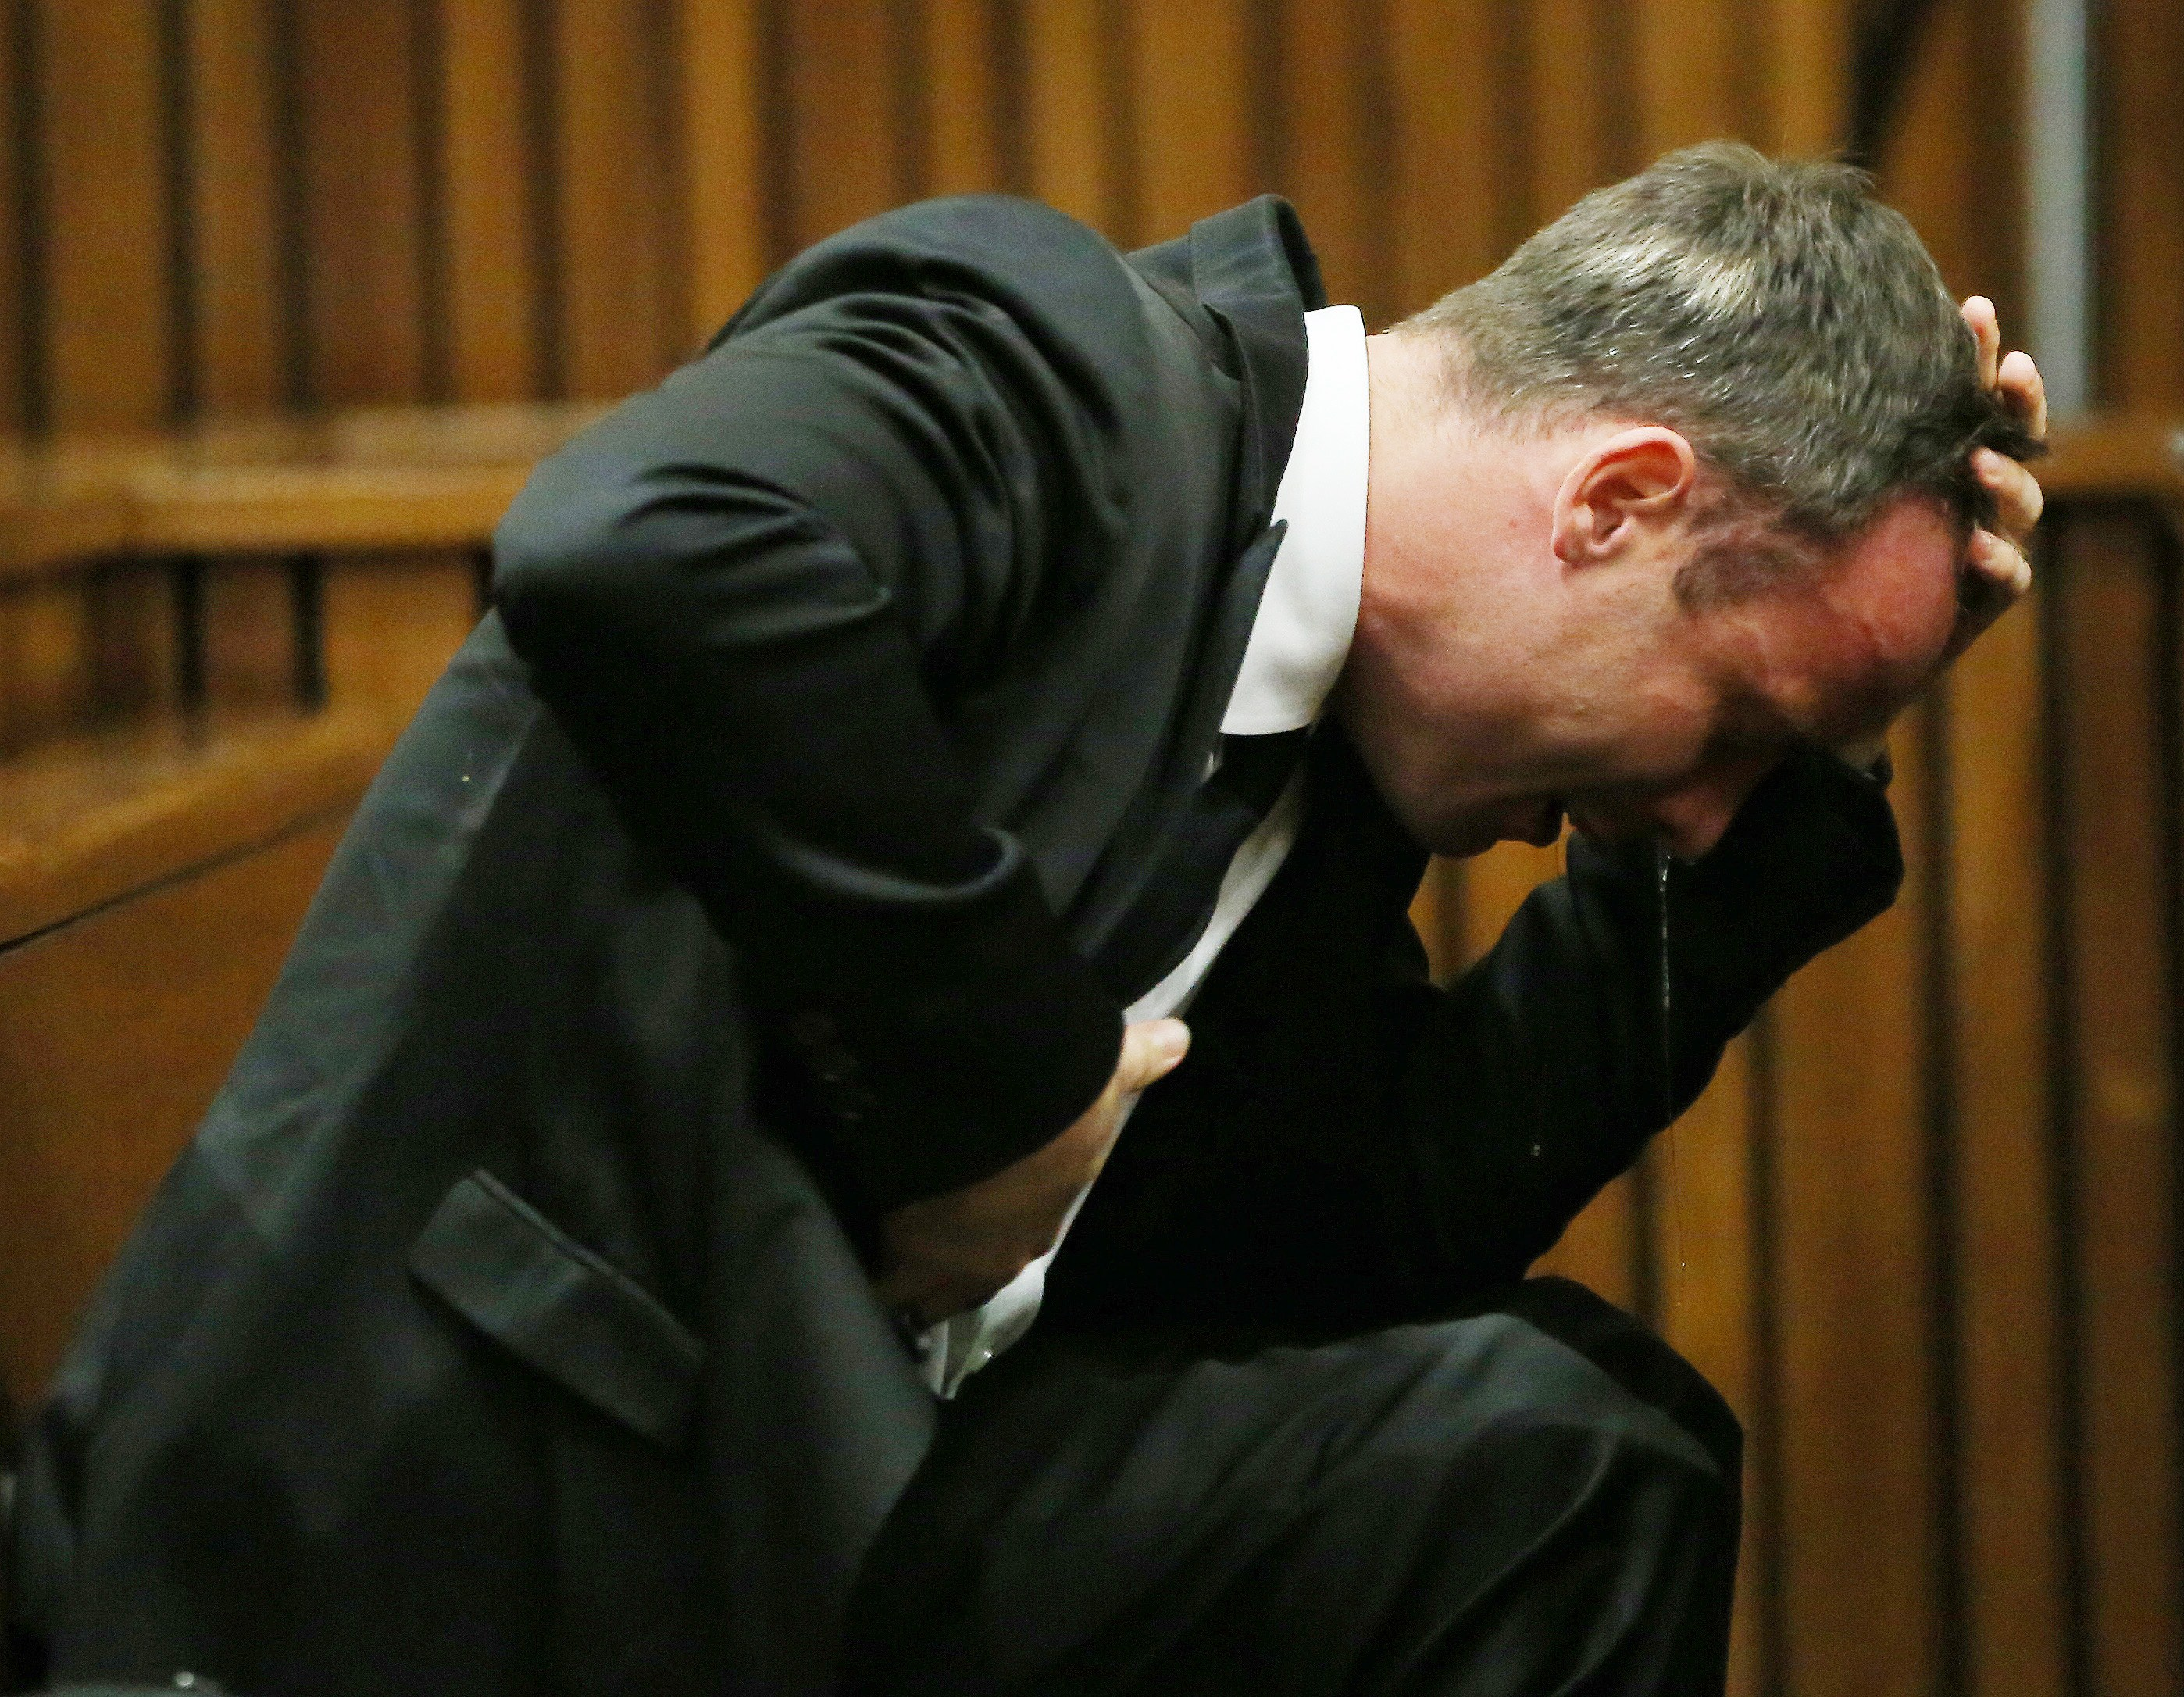 South African Paralympic track star Oscar Pistorius reacts as he listens to evidence by a pathologist during his trial in court in Pretoria on April 7, 2014.